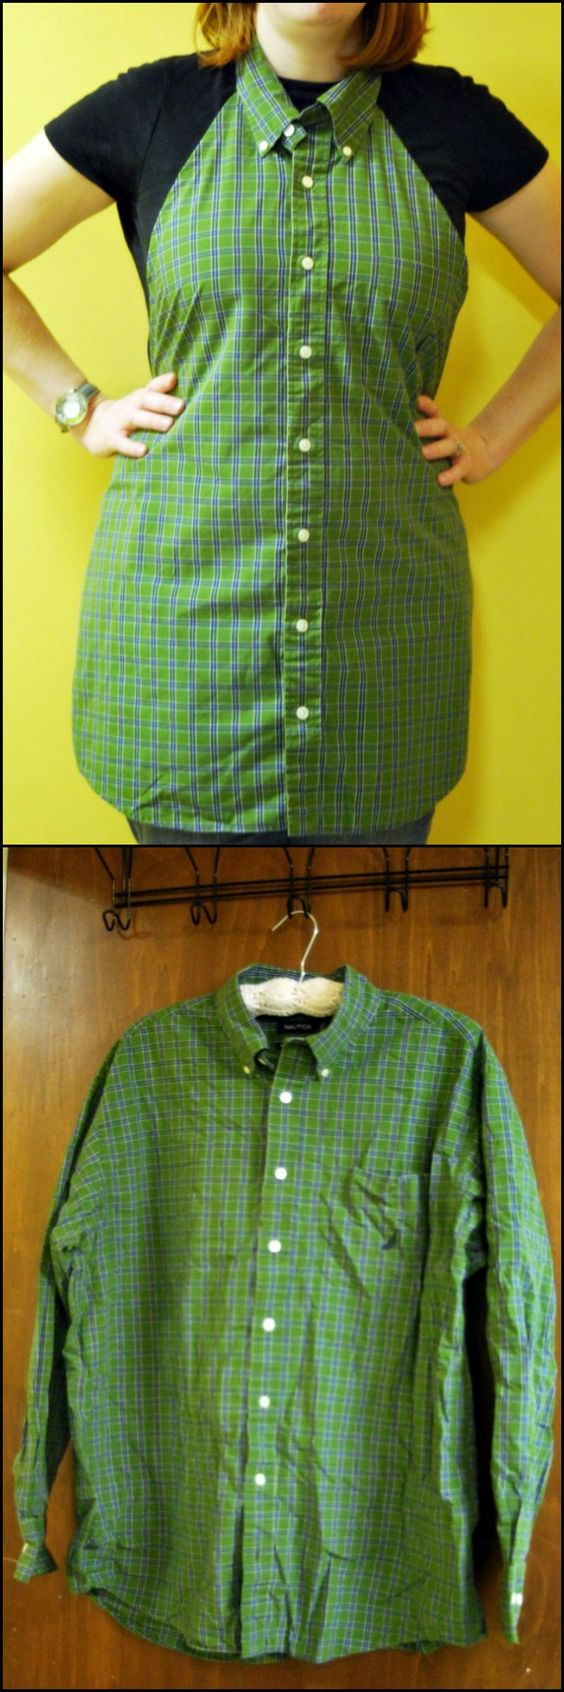 How to Make an Apron From Men's Shirt  http://craft.ideas2live4.com/2015/03/24/diy-mens-shirt-apron/  Just because you're taking on a project doesn't mean you have to ruin your clothes.  Why not make this DIY men's shirt apron!